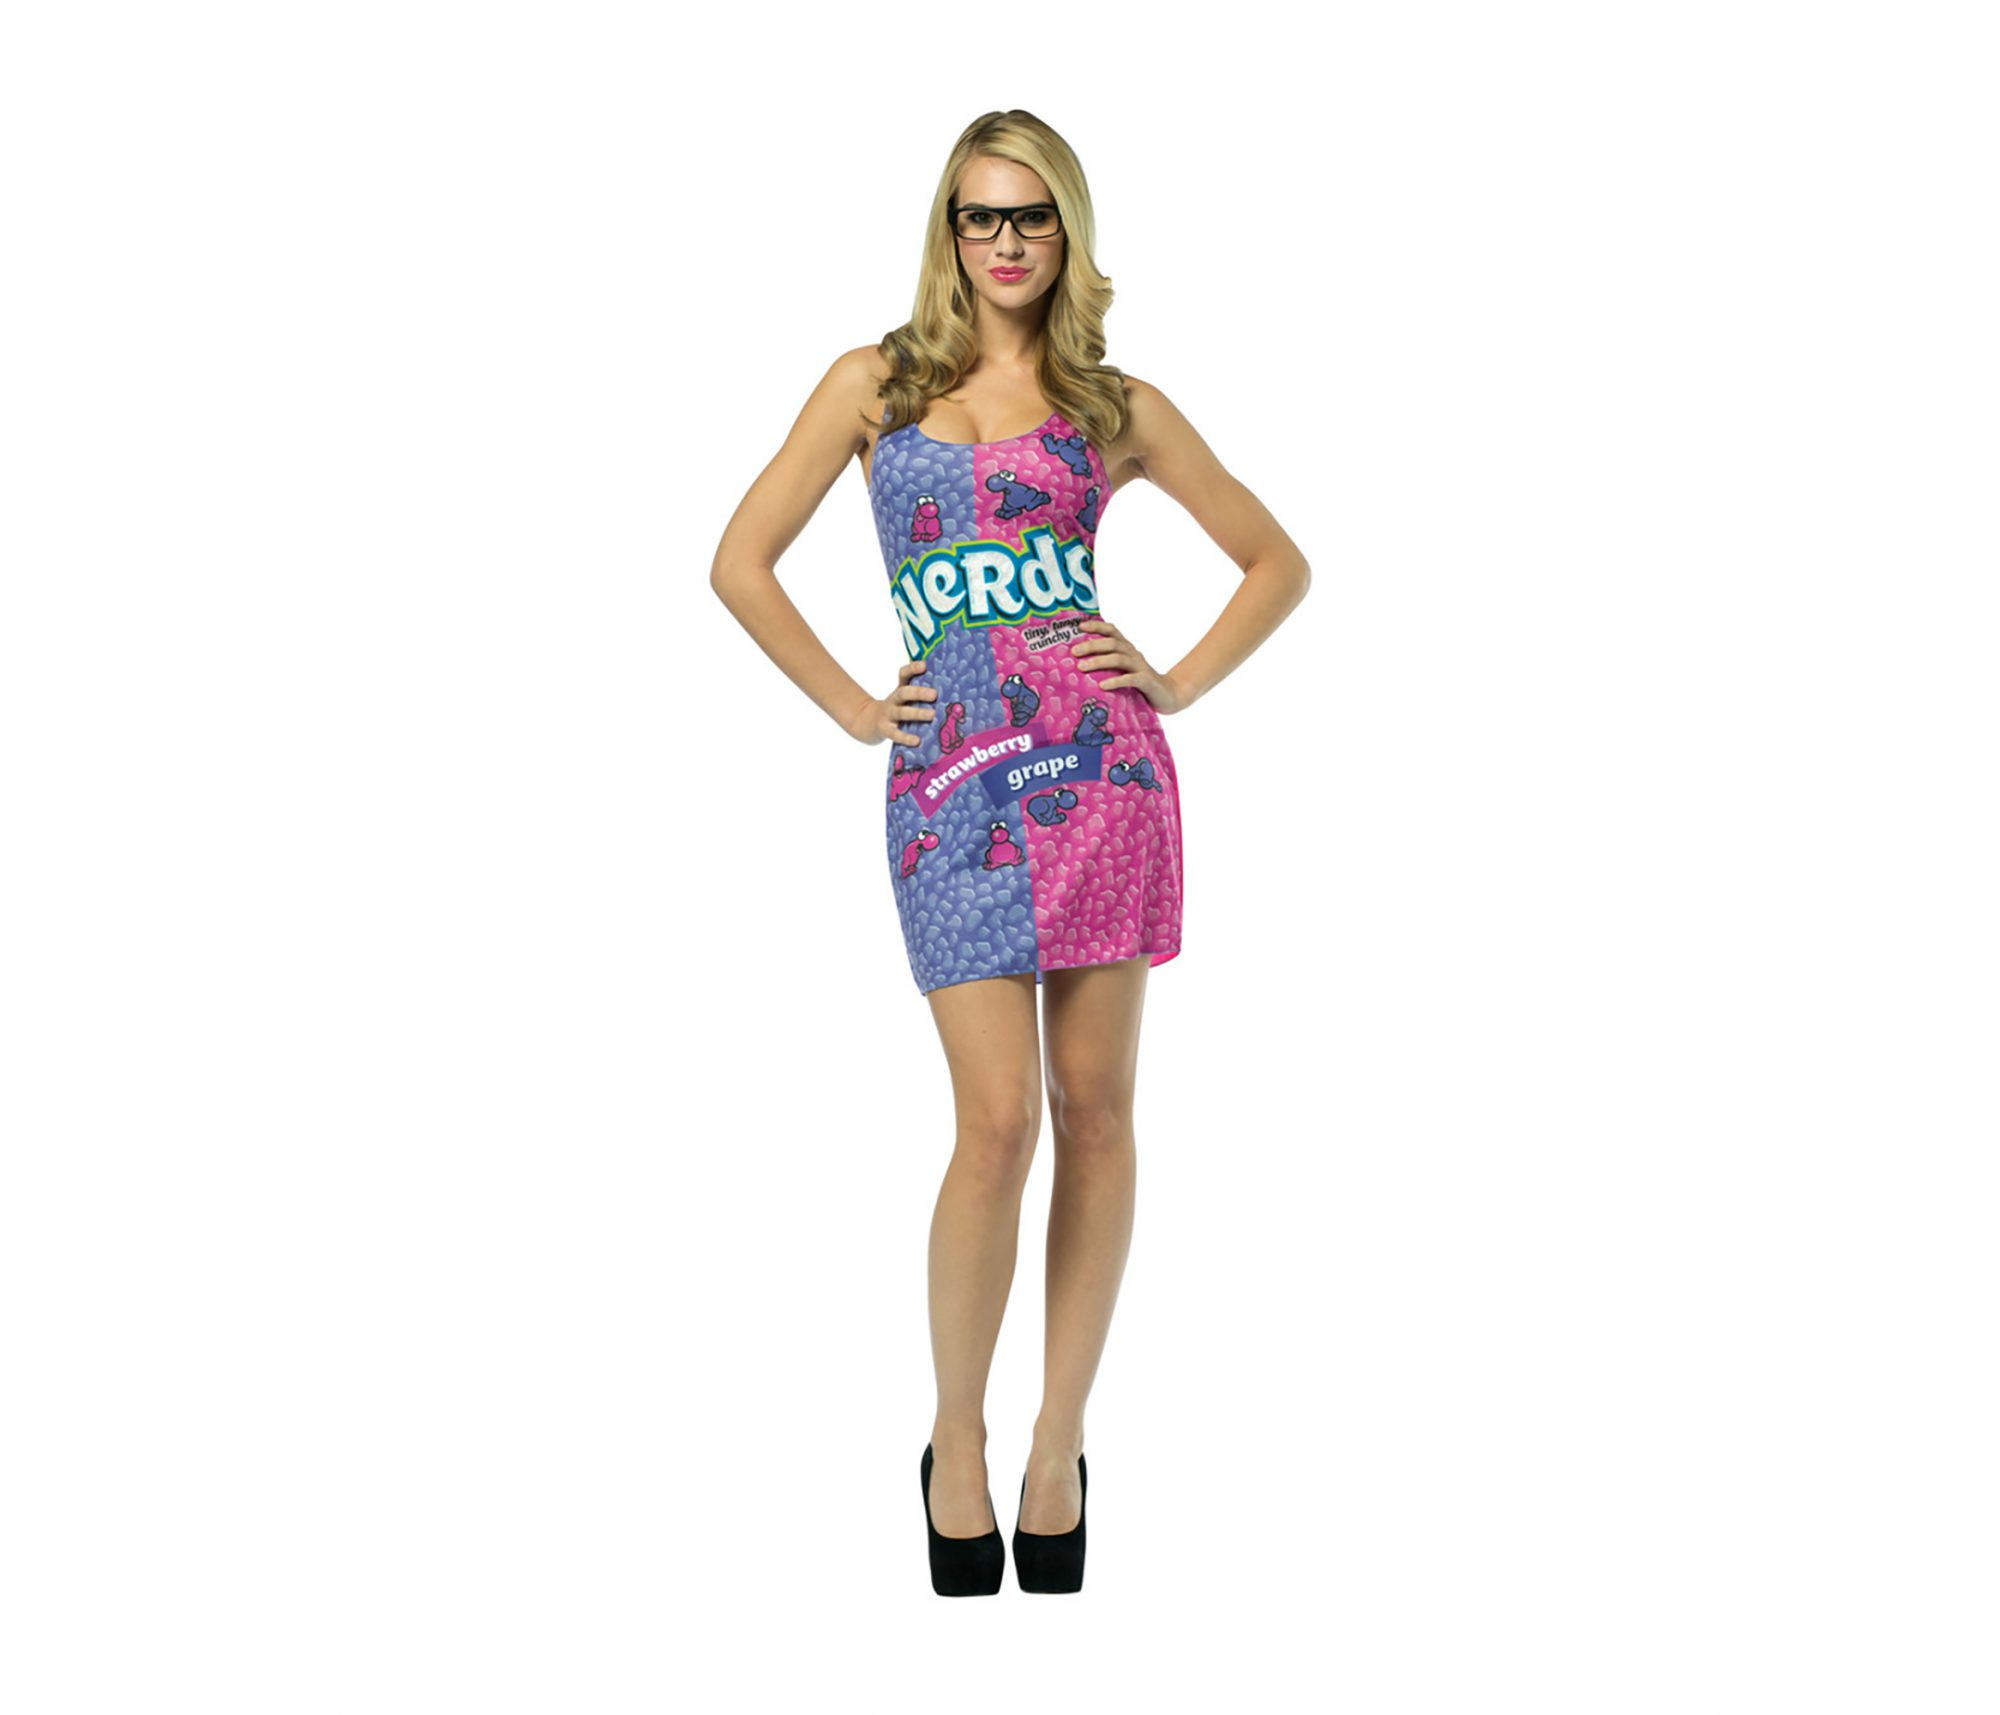 1709w-Grape-Nerds-Dress-Costume.jpg